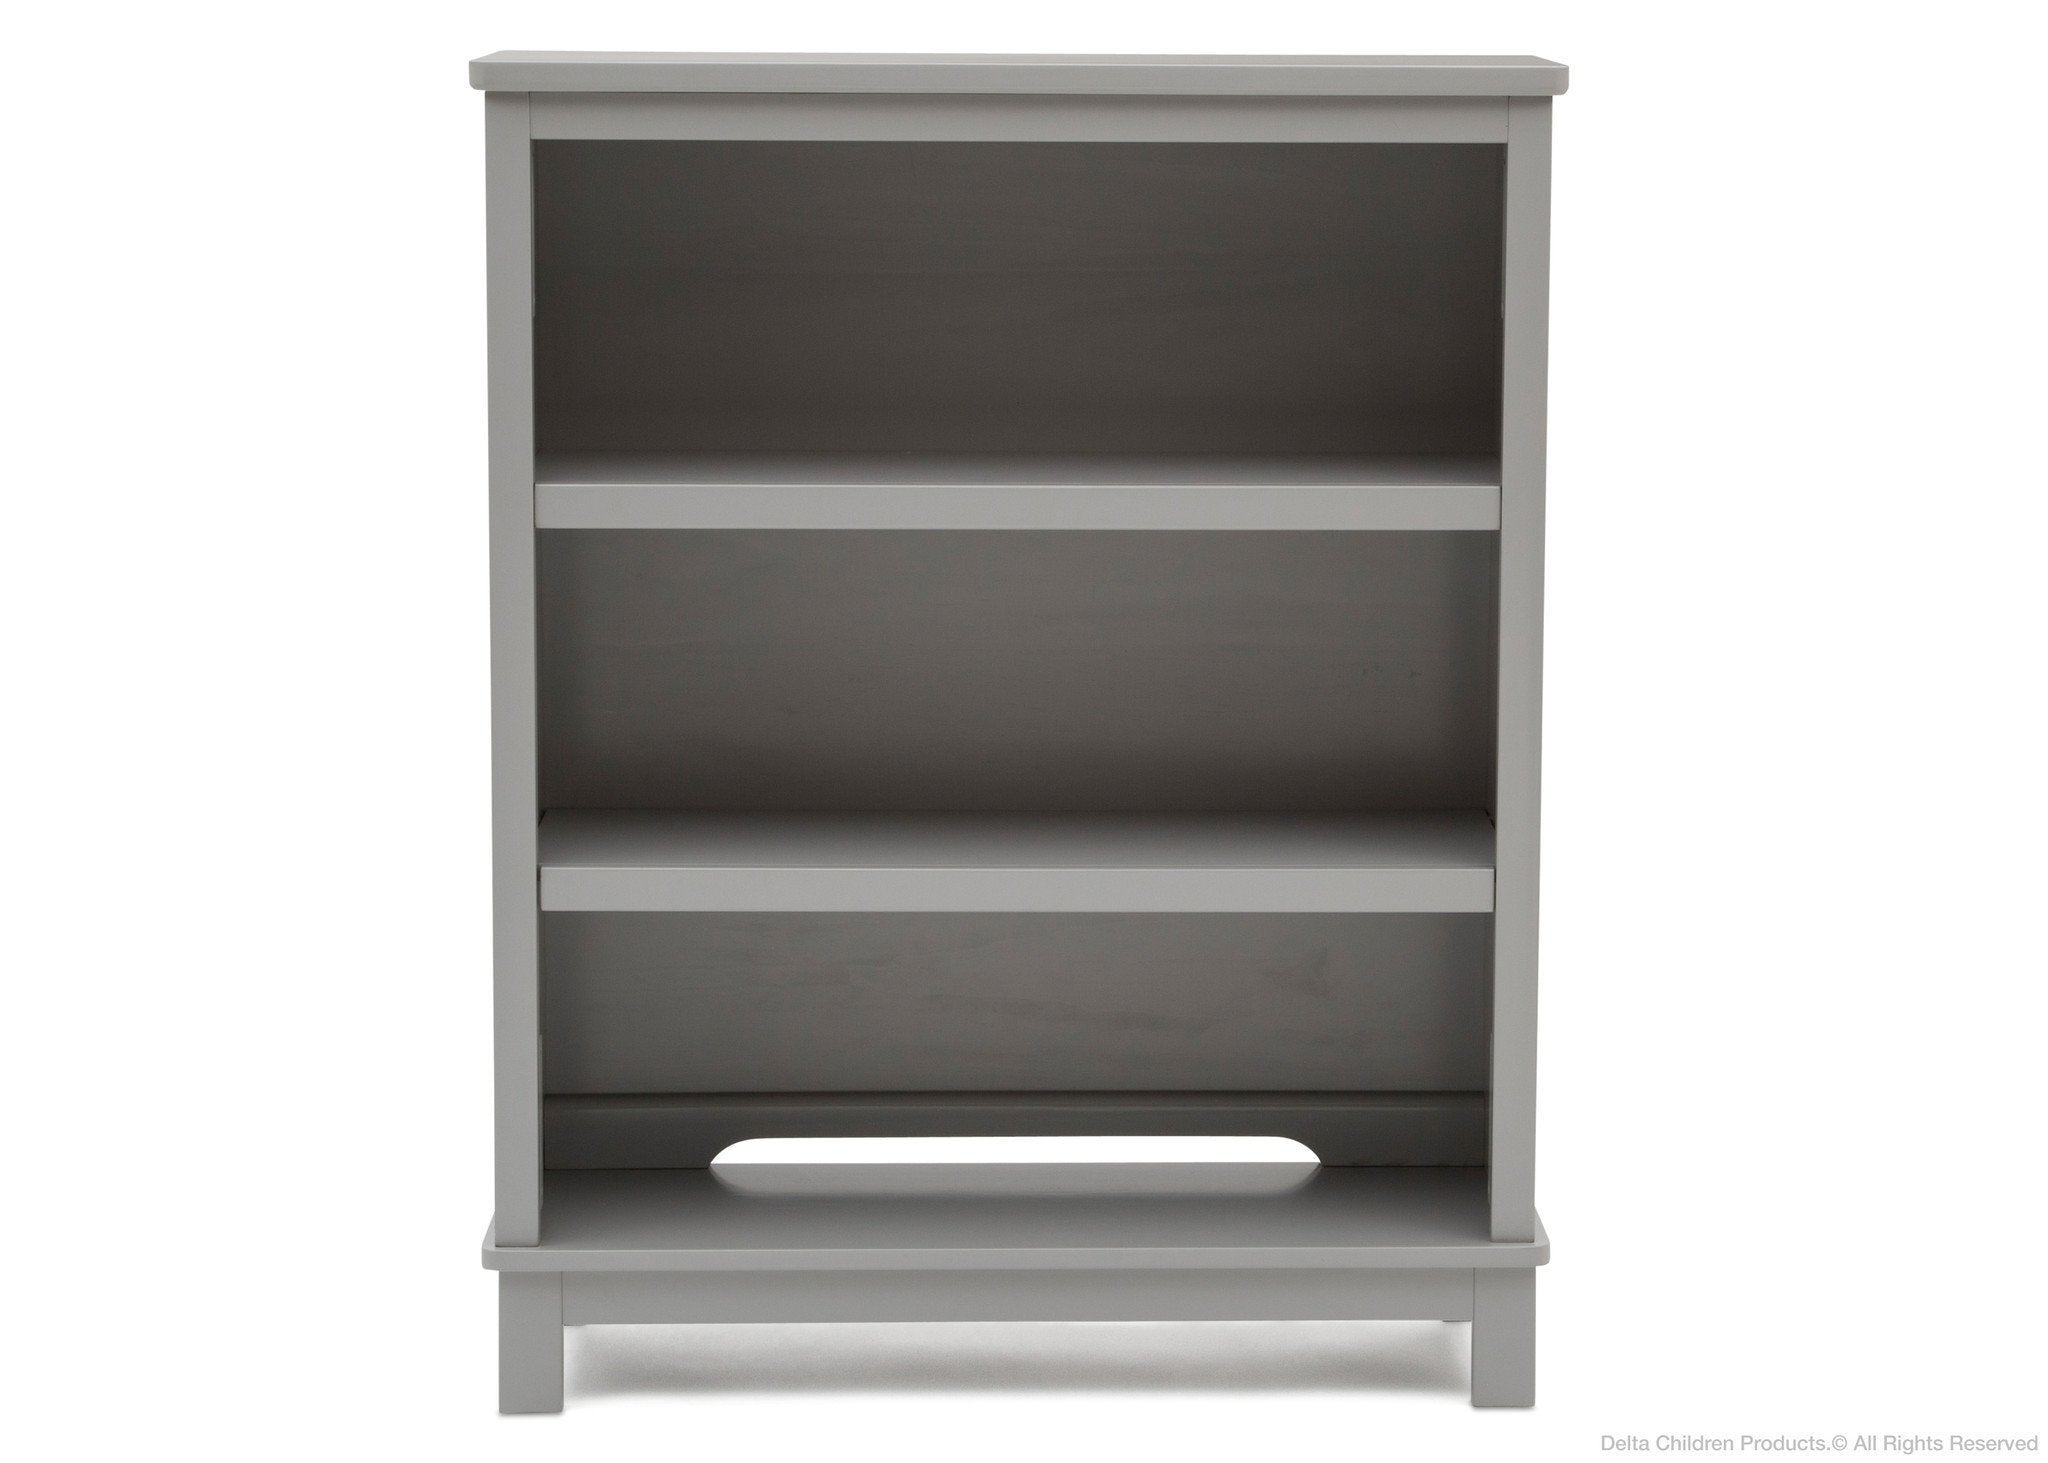 Delta Children Grey (026) Epic Bookcase/Hutch Front View with Base a3a